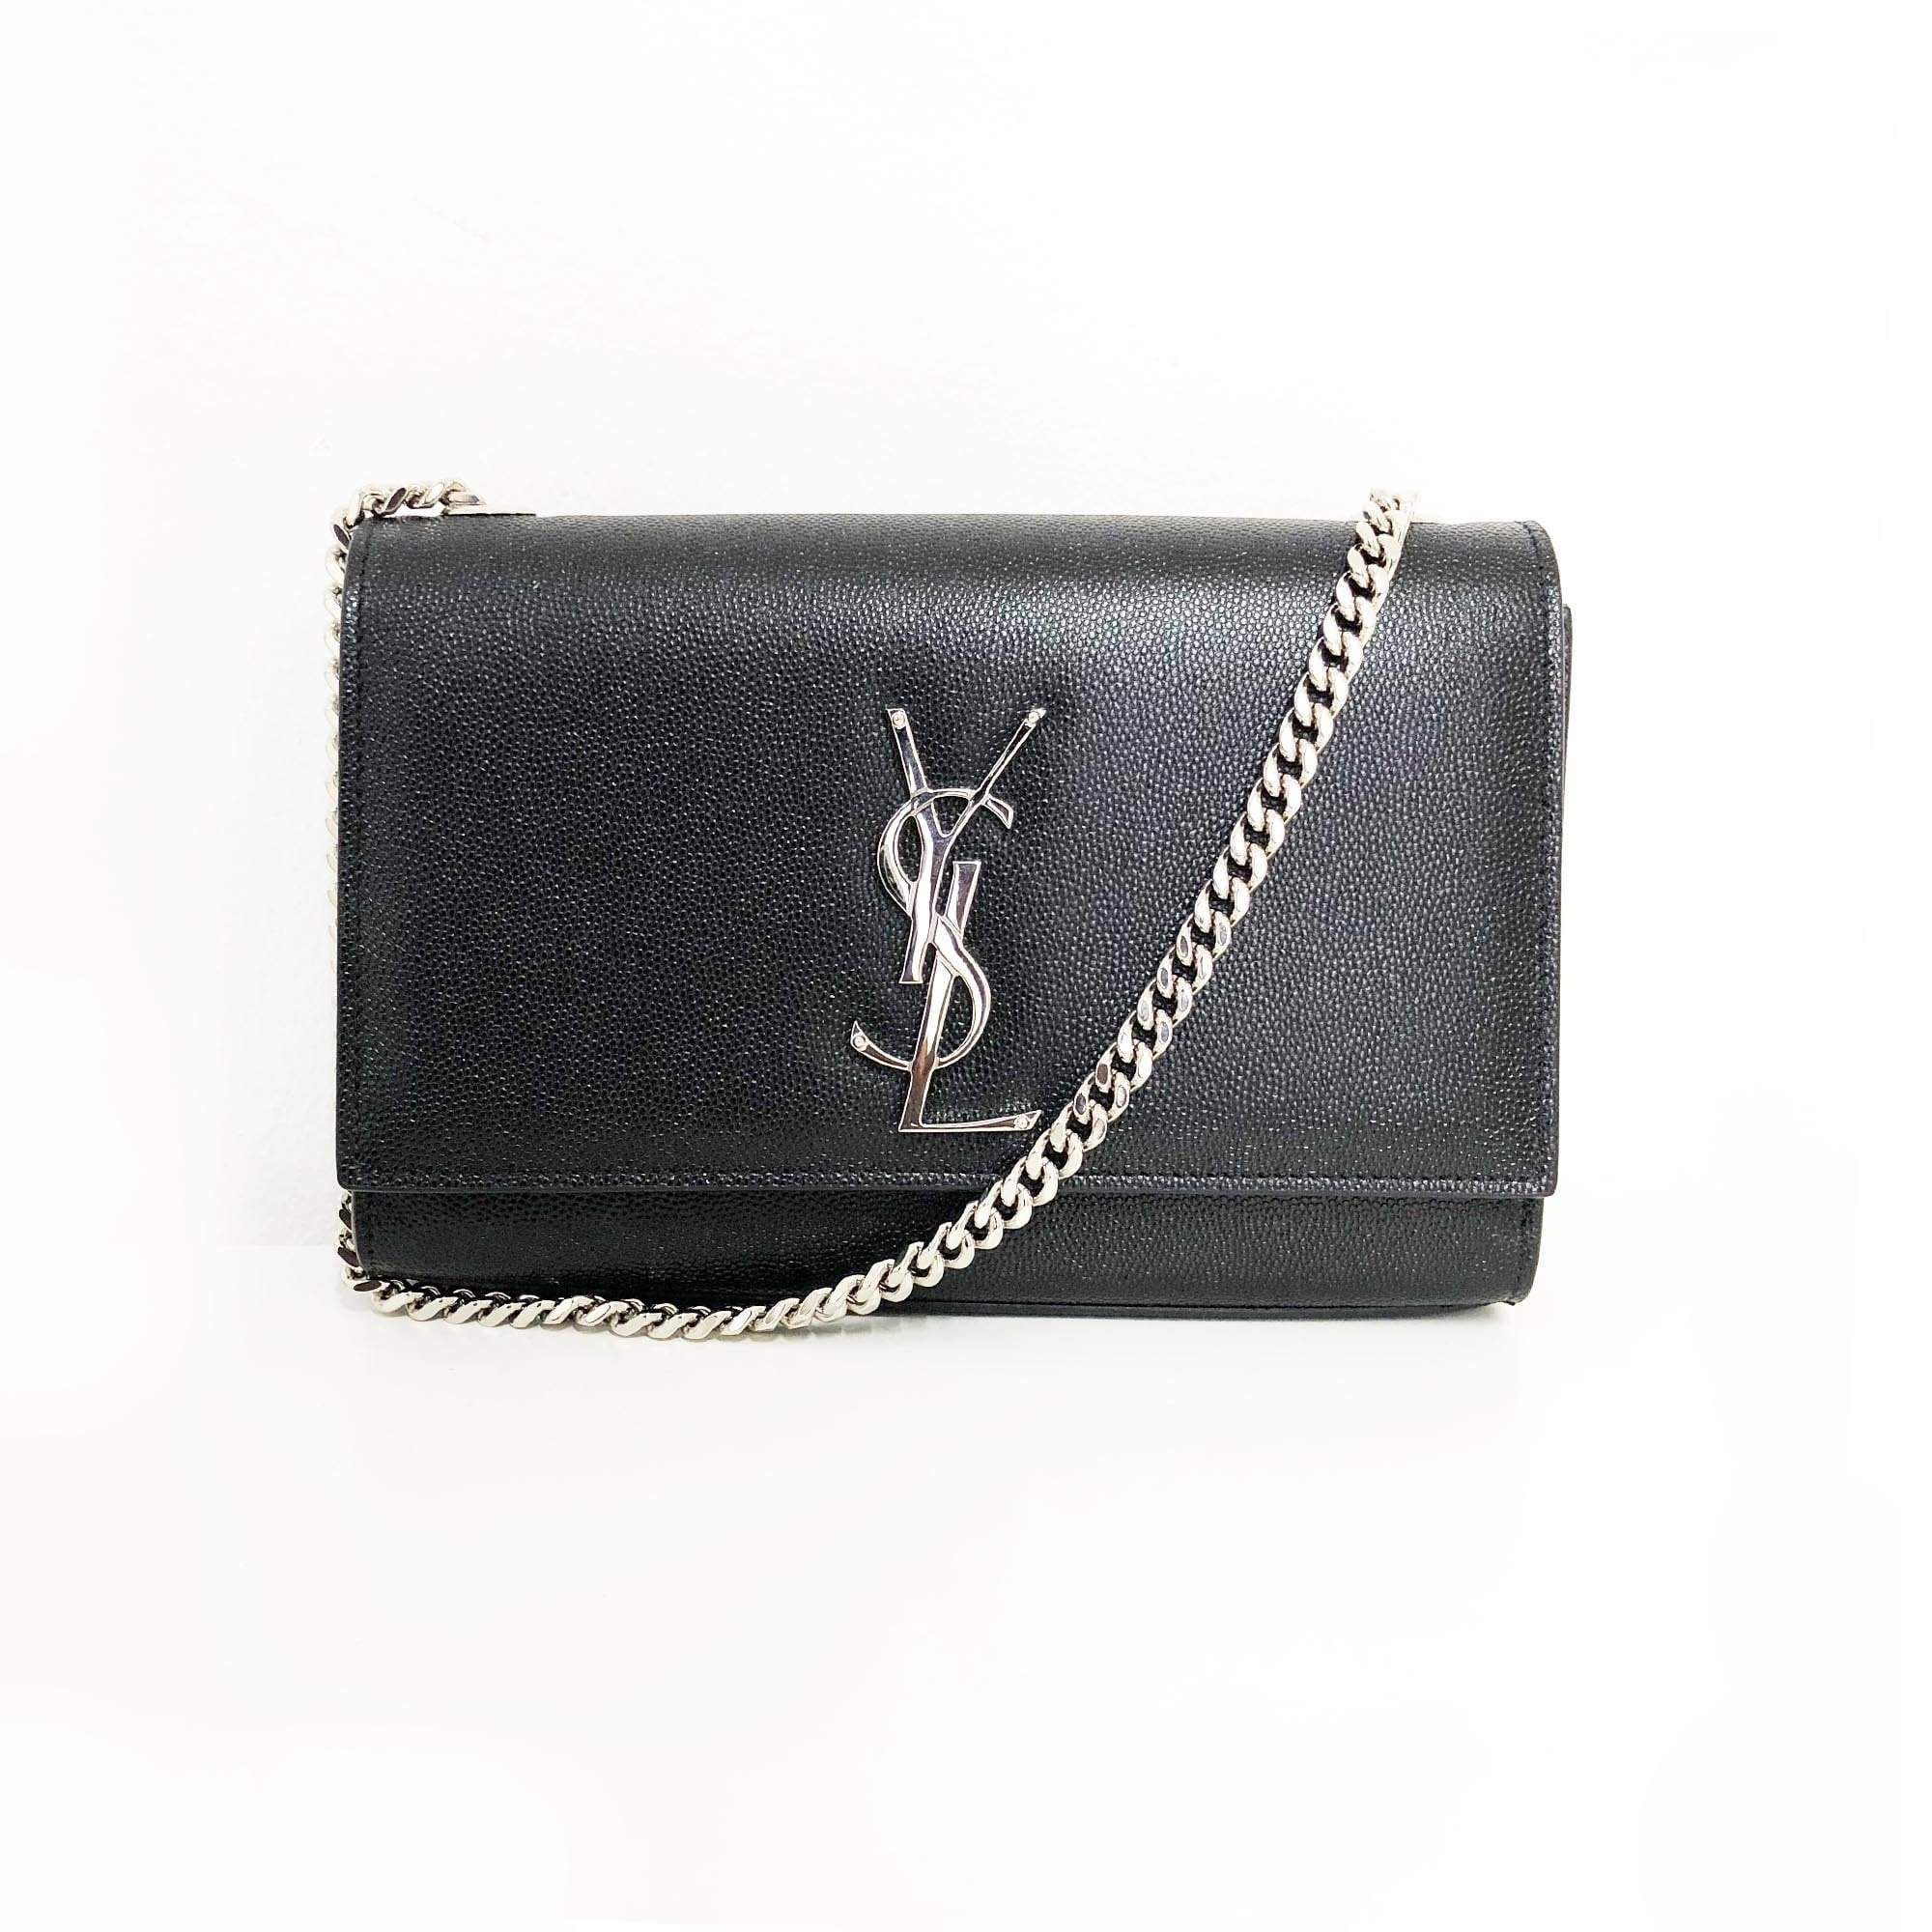 04e166467e3 Yves Saint Laurent Kate Small Monogram shoulder bag – Garderobe